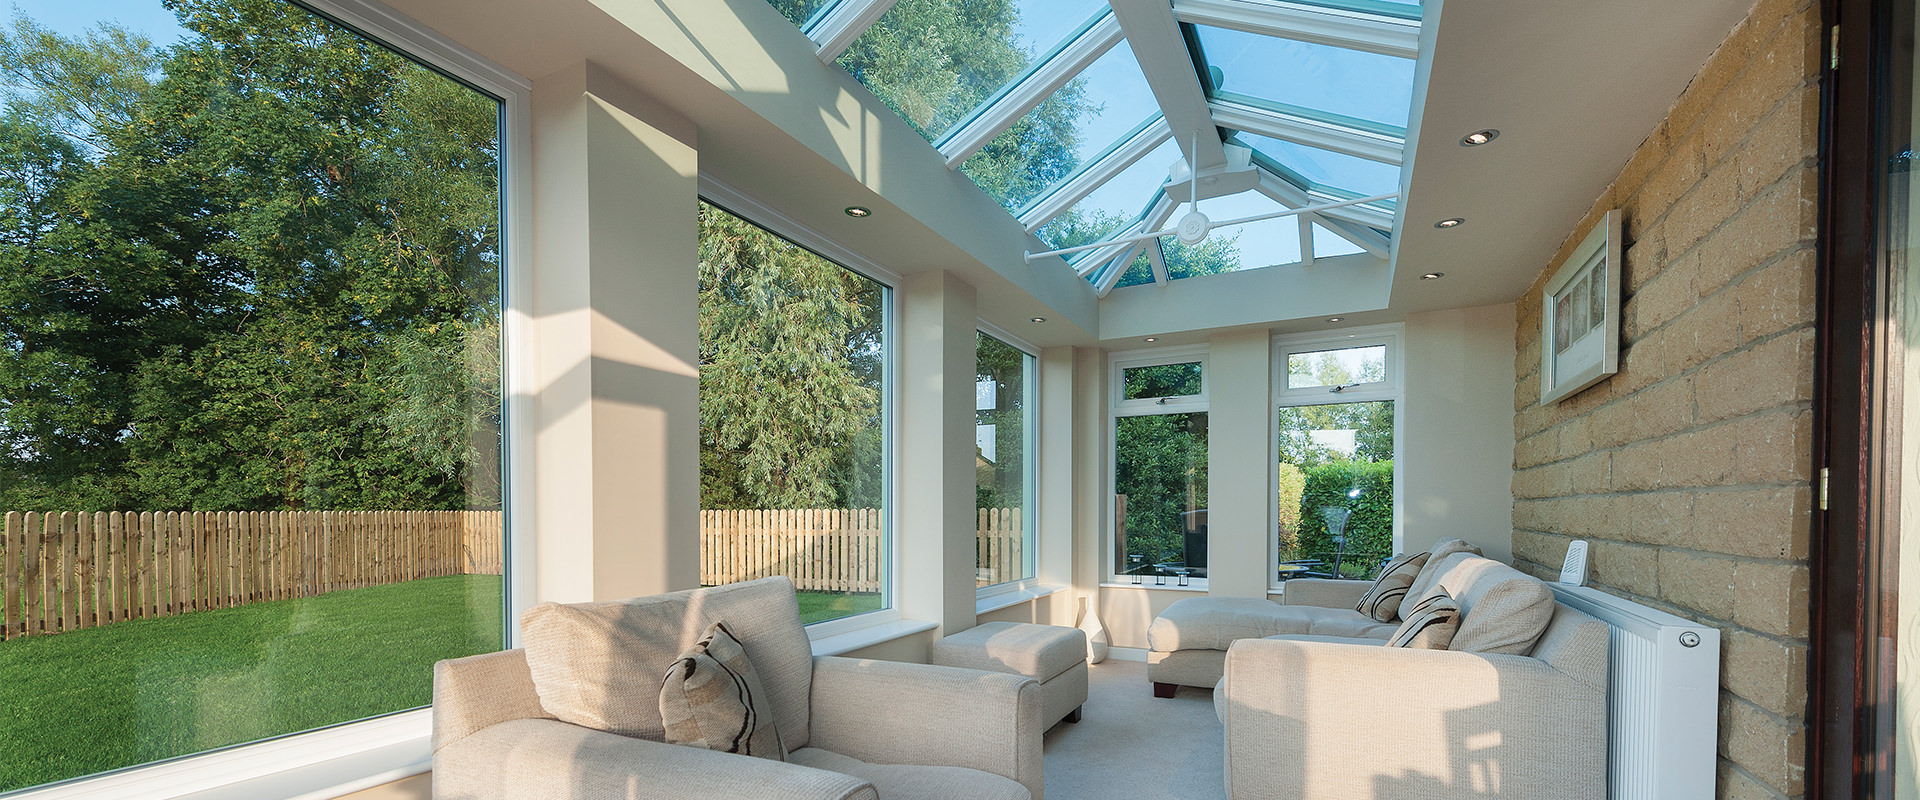 Conservatory-Roofs-1